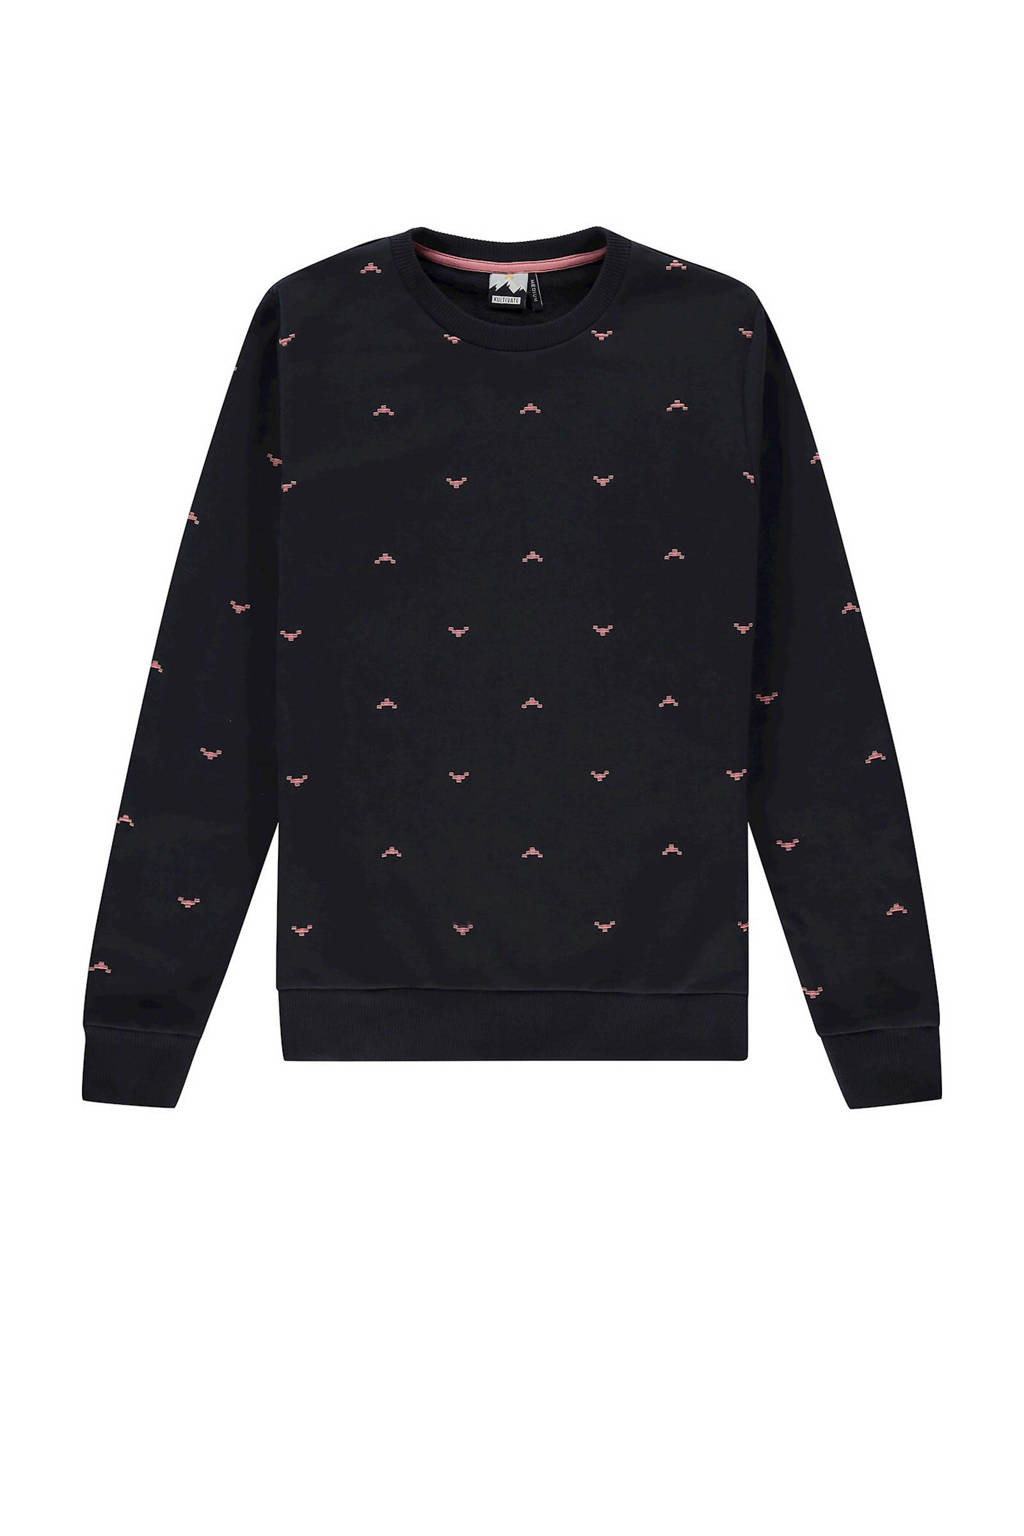 Kultivate sweater met all over print donkerblauw, Donkerblauw